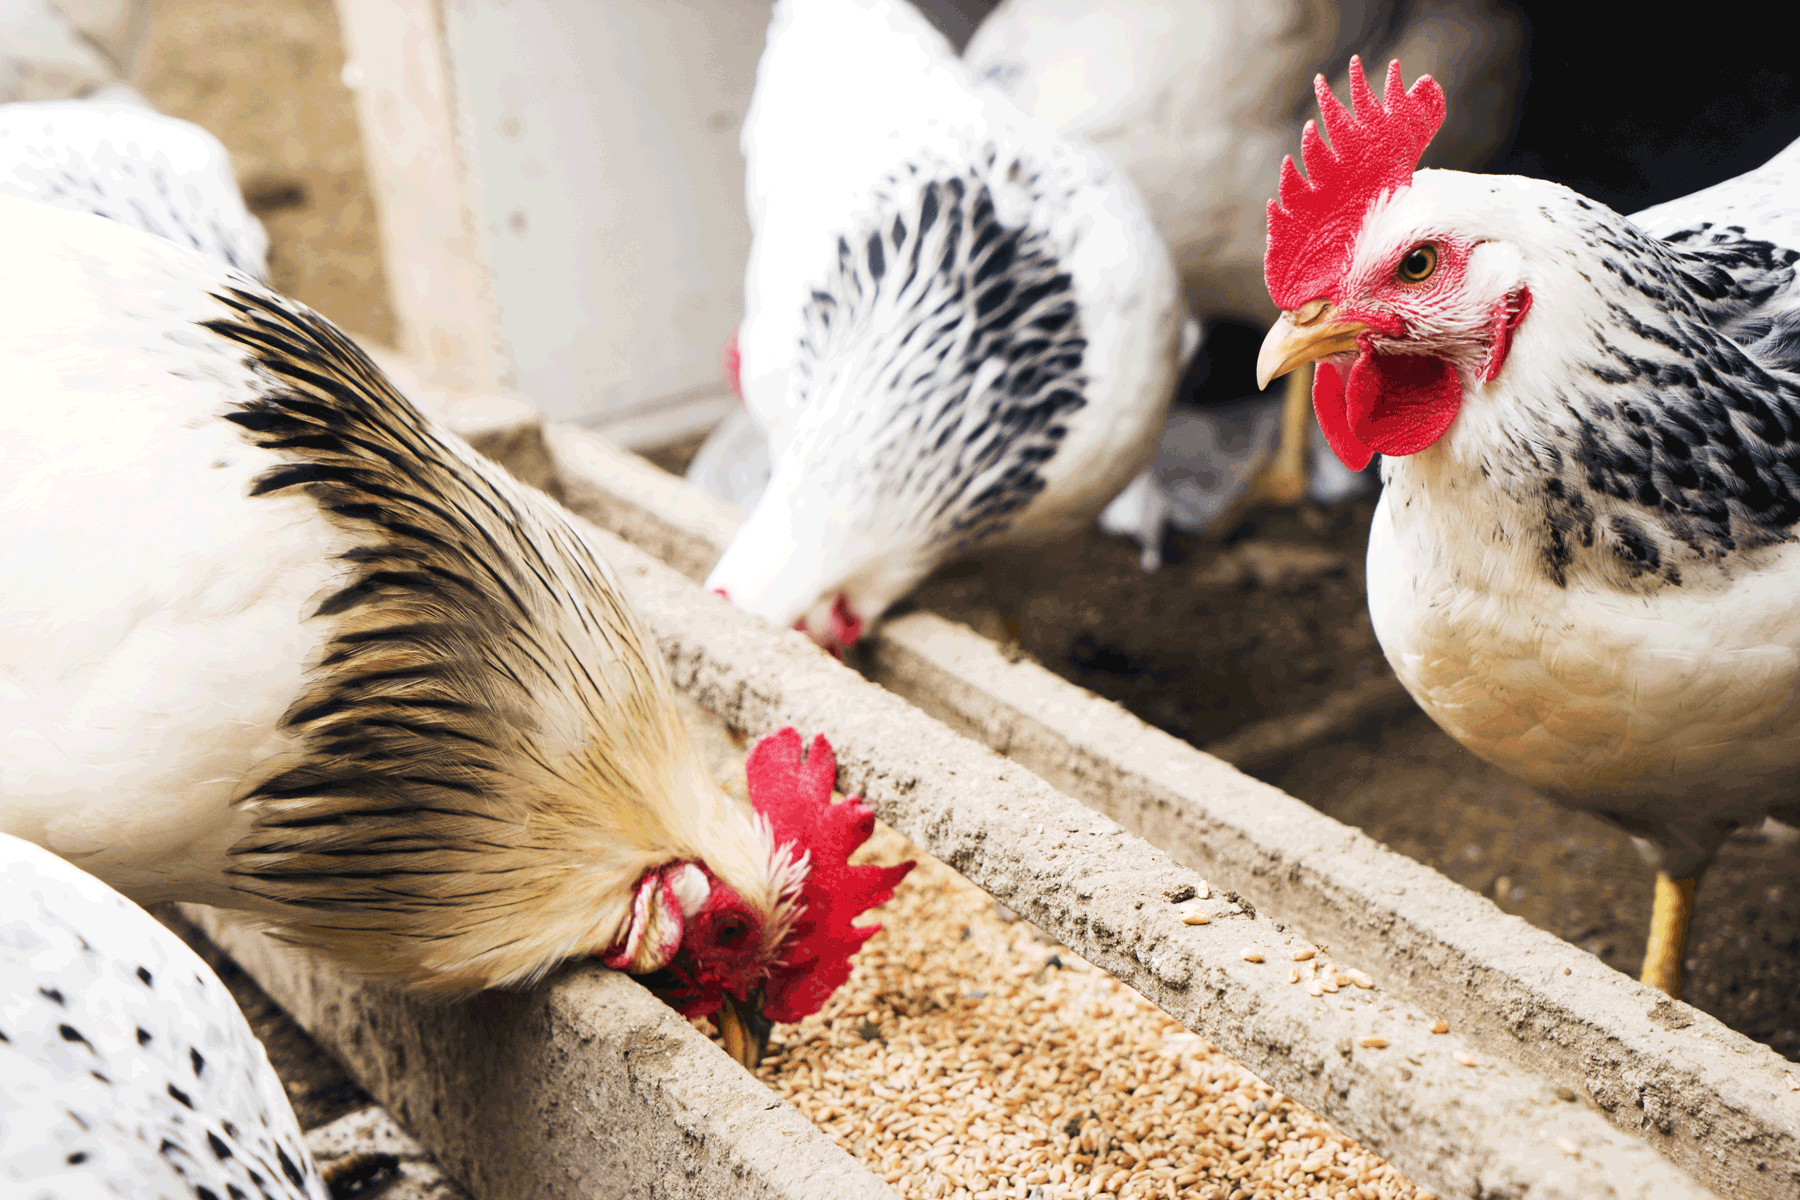 Five Basic Biosecurity Tips to Protect Your Flock